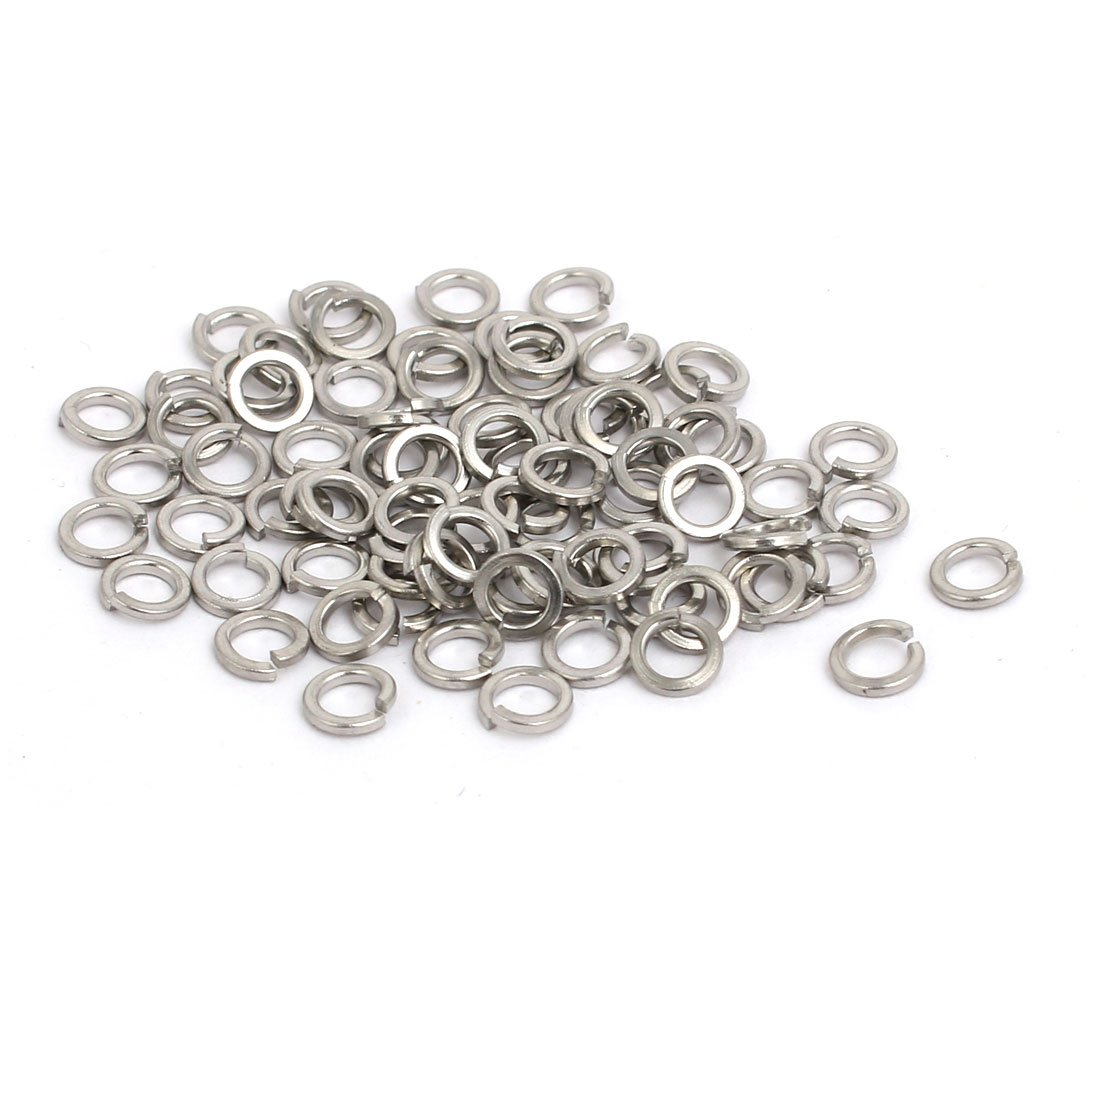 uxcell M3 Inner Diameter 304 Stainless Steel Split Lock Spring Washer Gasket 80pcs a17060600ux0634